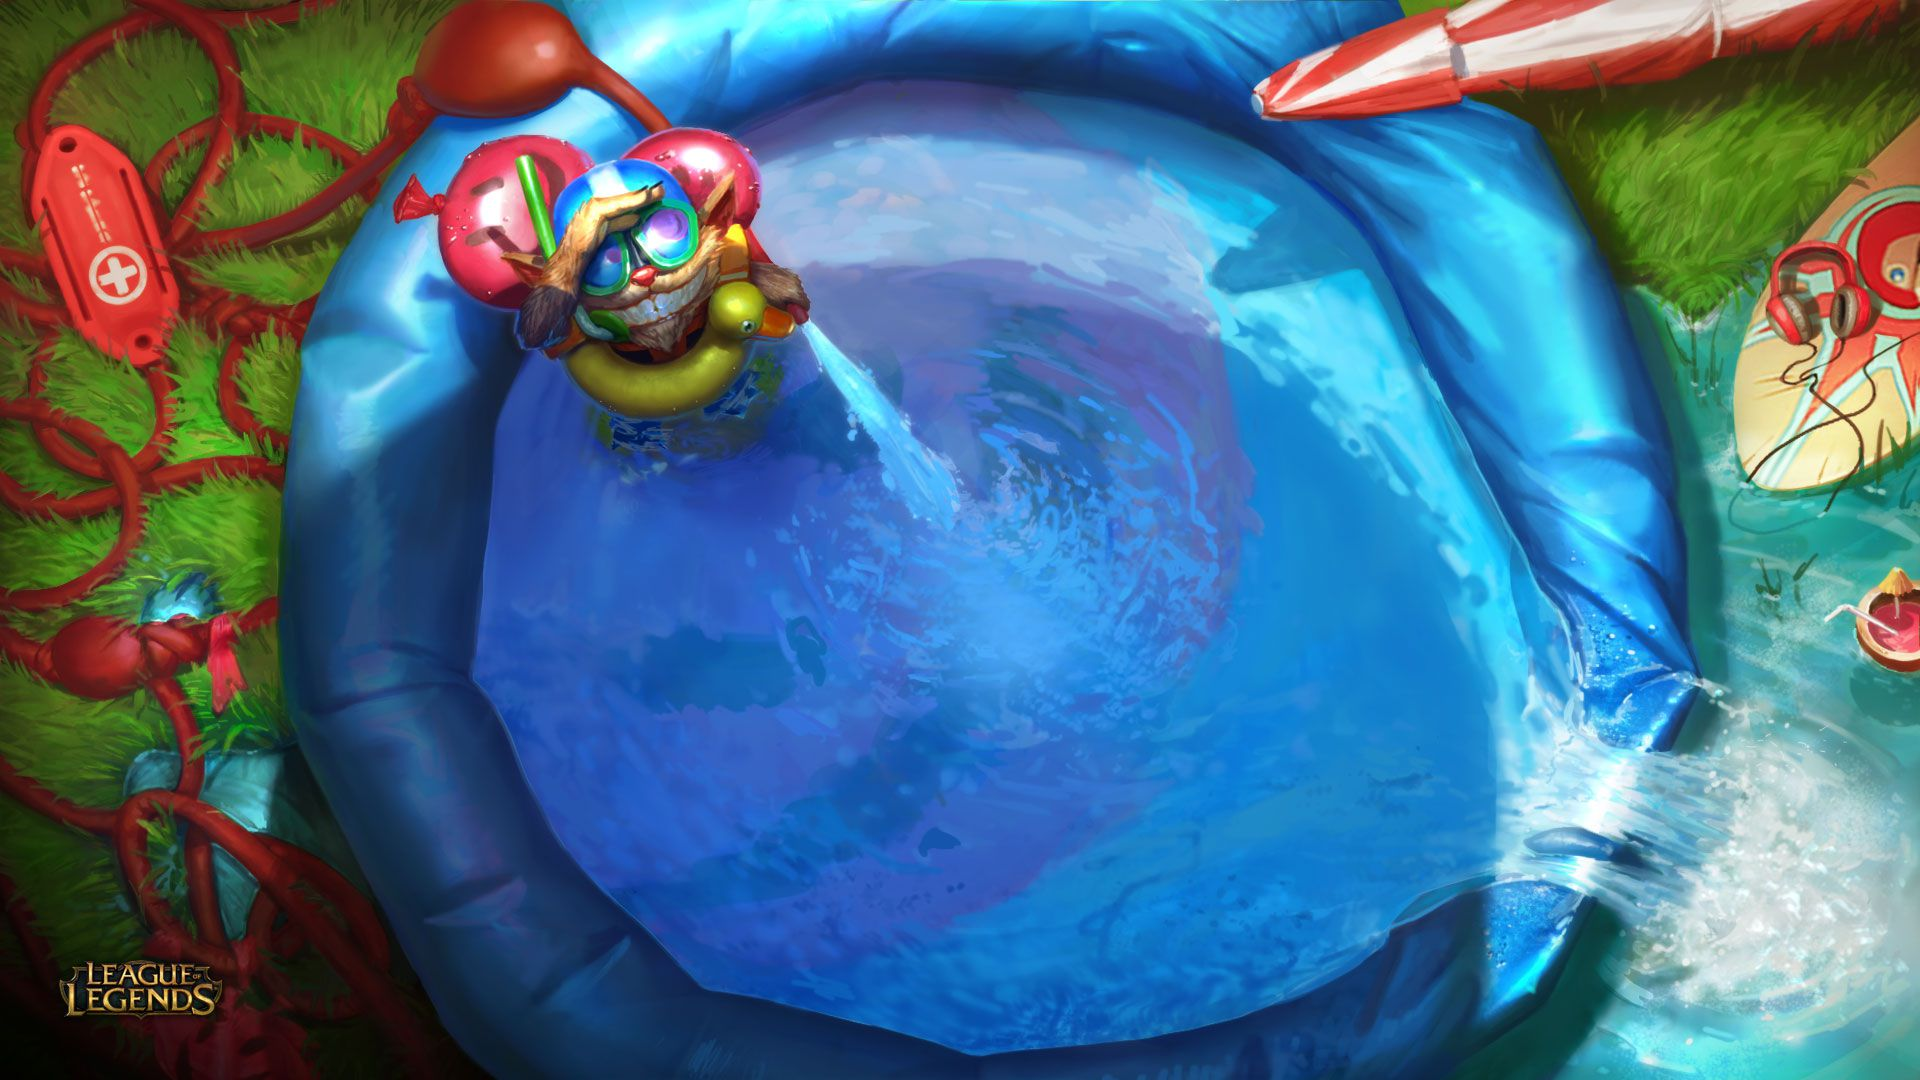 Pool Party Invitation - League of Legends Wallpapers